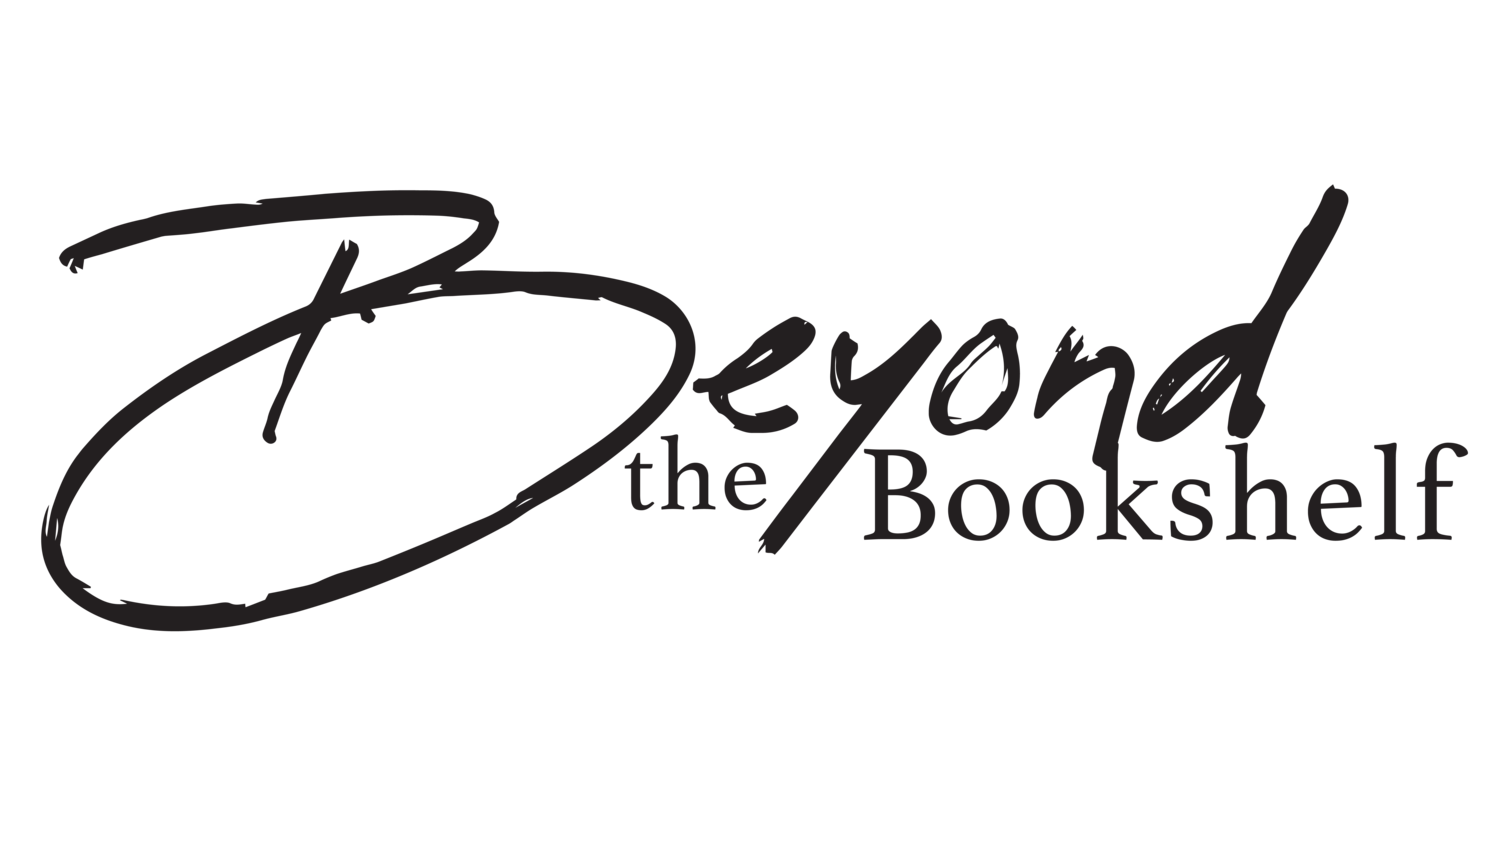 Beyond the Bookshelf